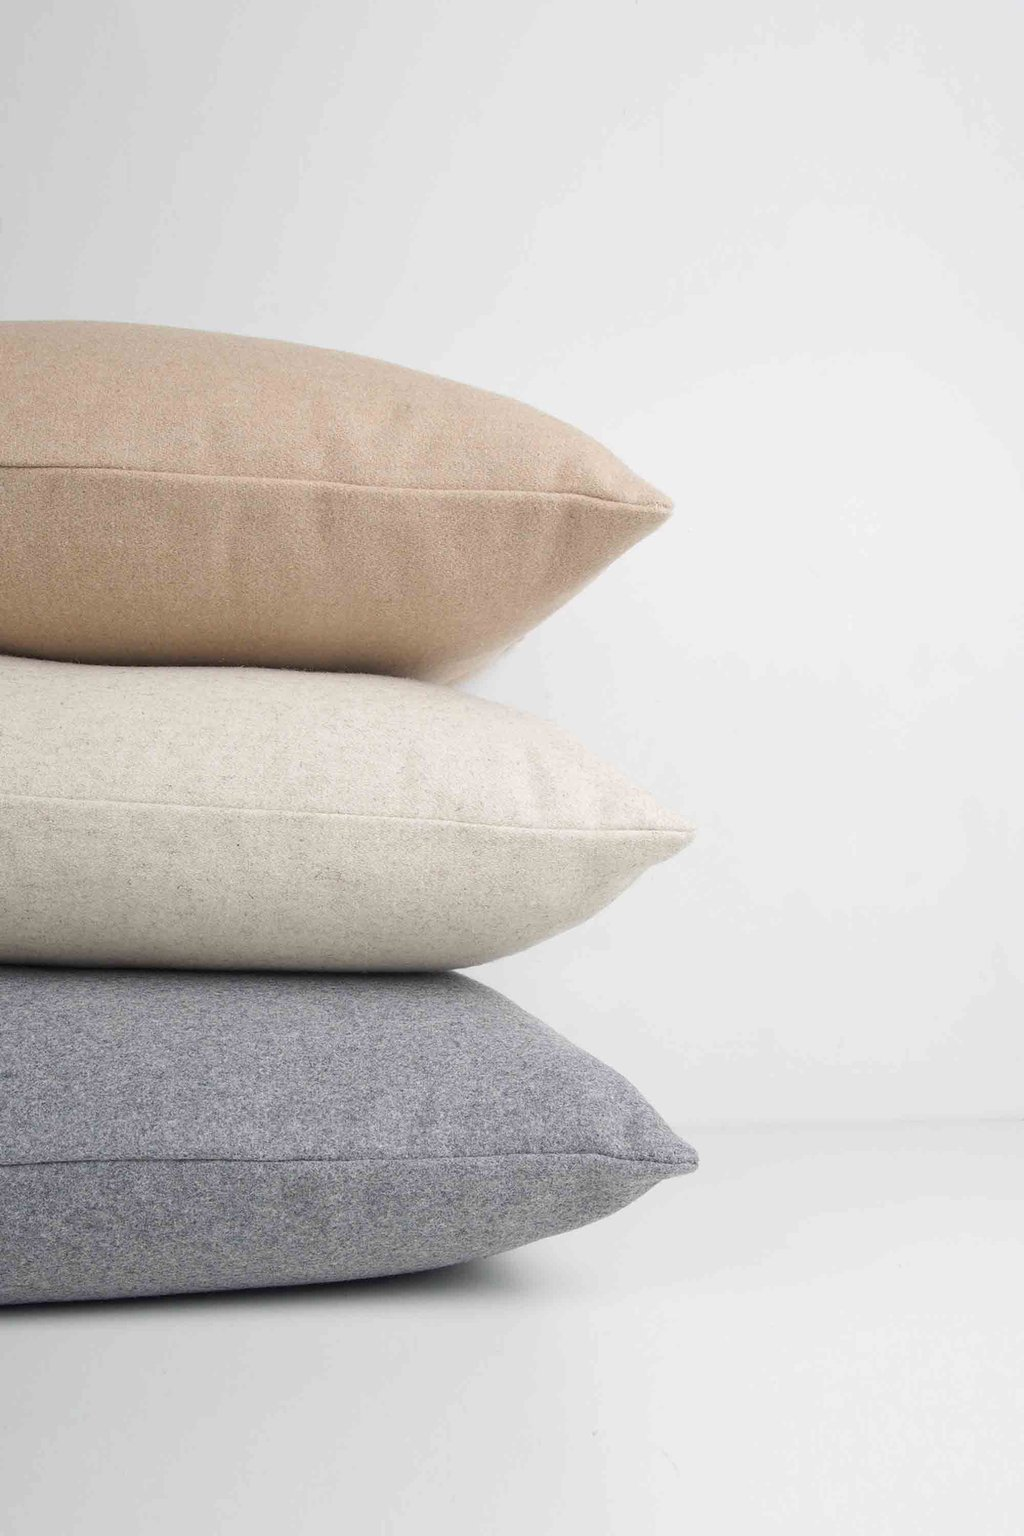 Felt Throw Pillow 2336 Oatmeal 1